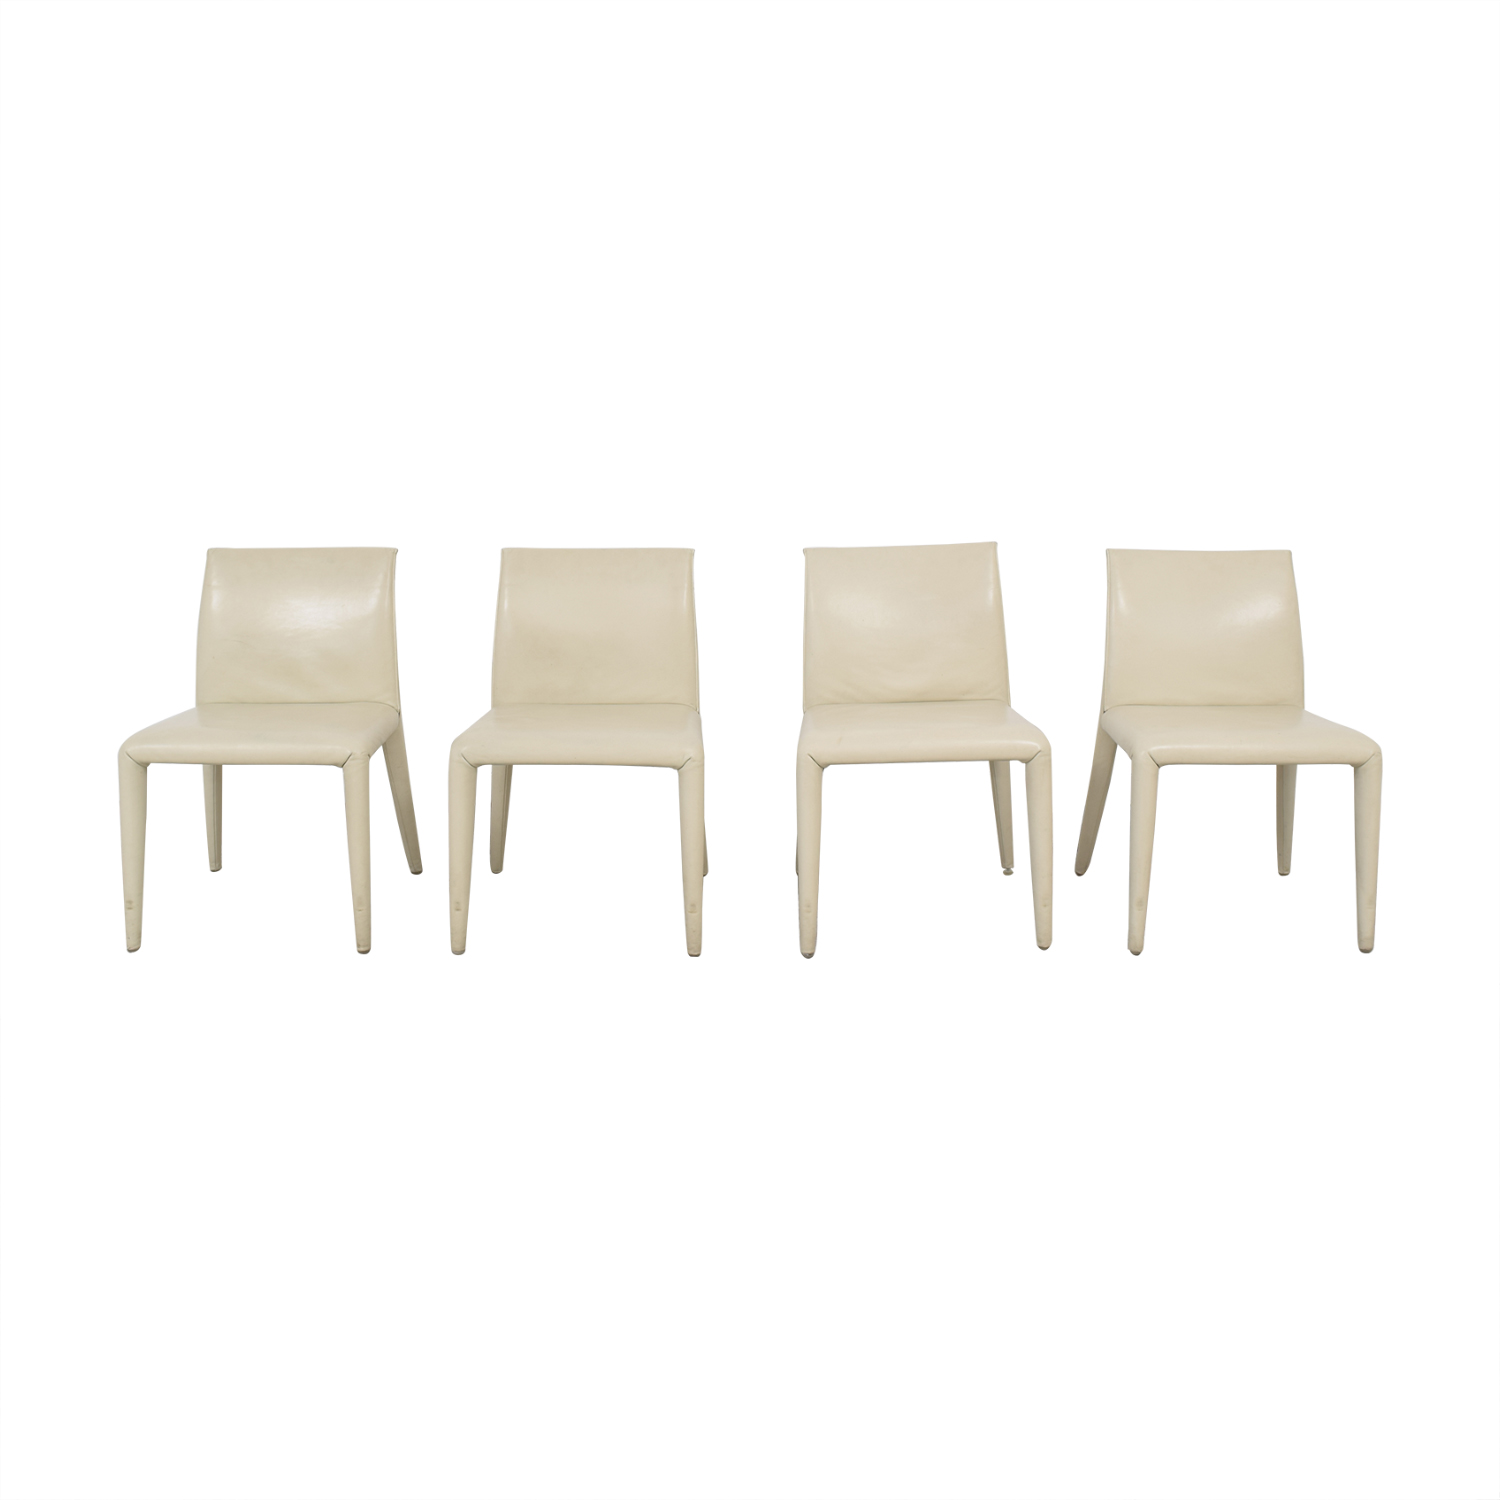 B&B Italia B&B Italia Mario Bellini Vol Au Vent Dining Chairs nyc